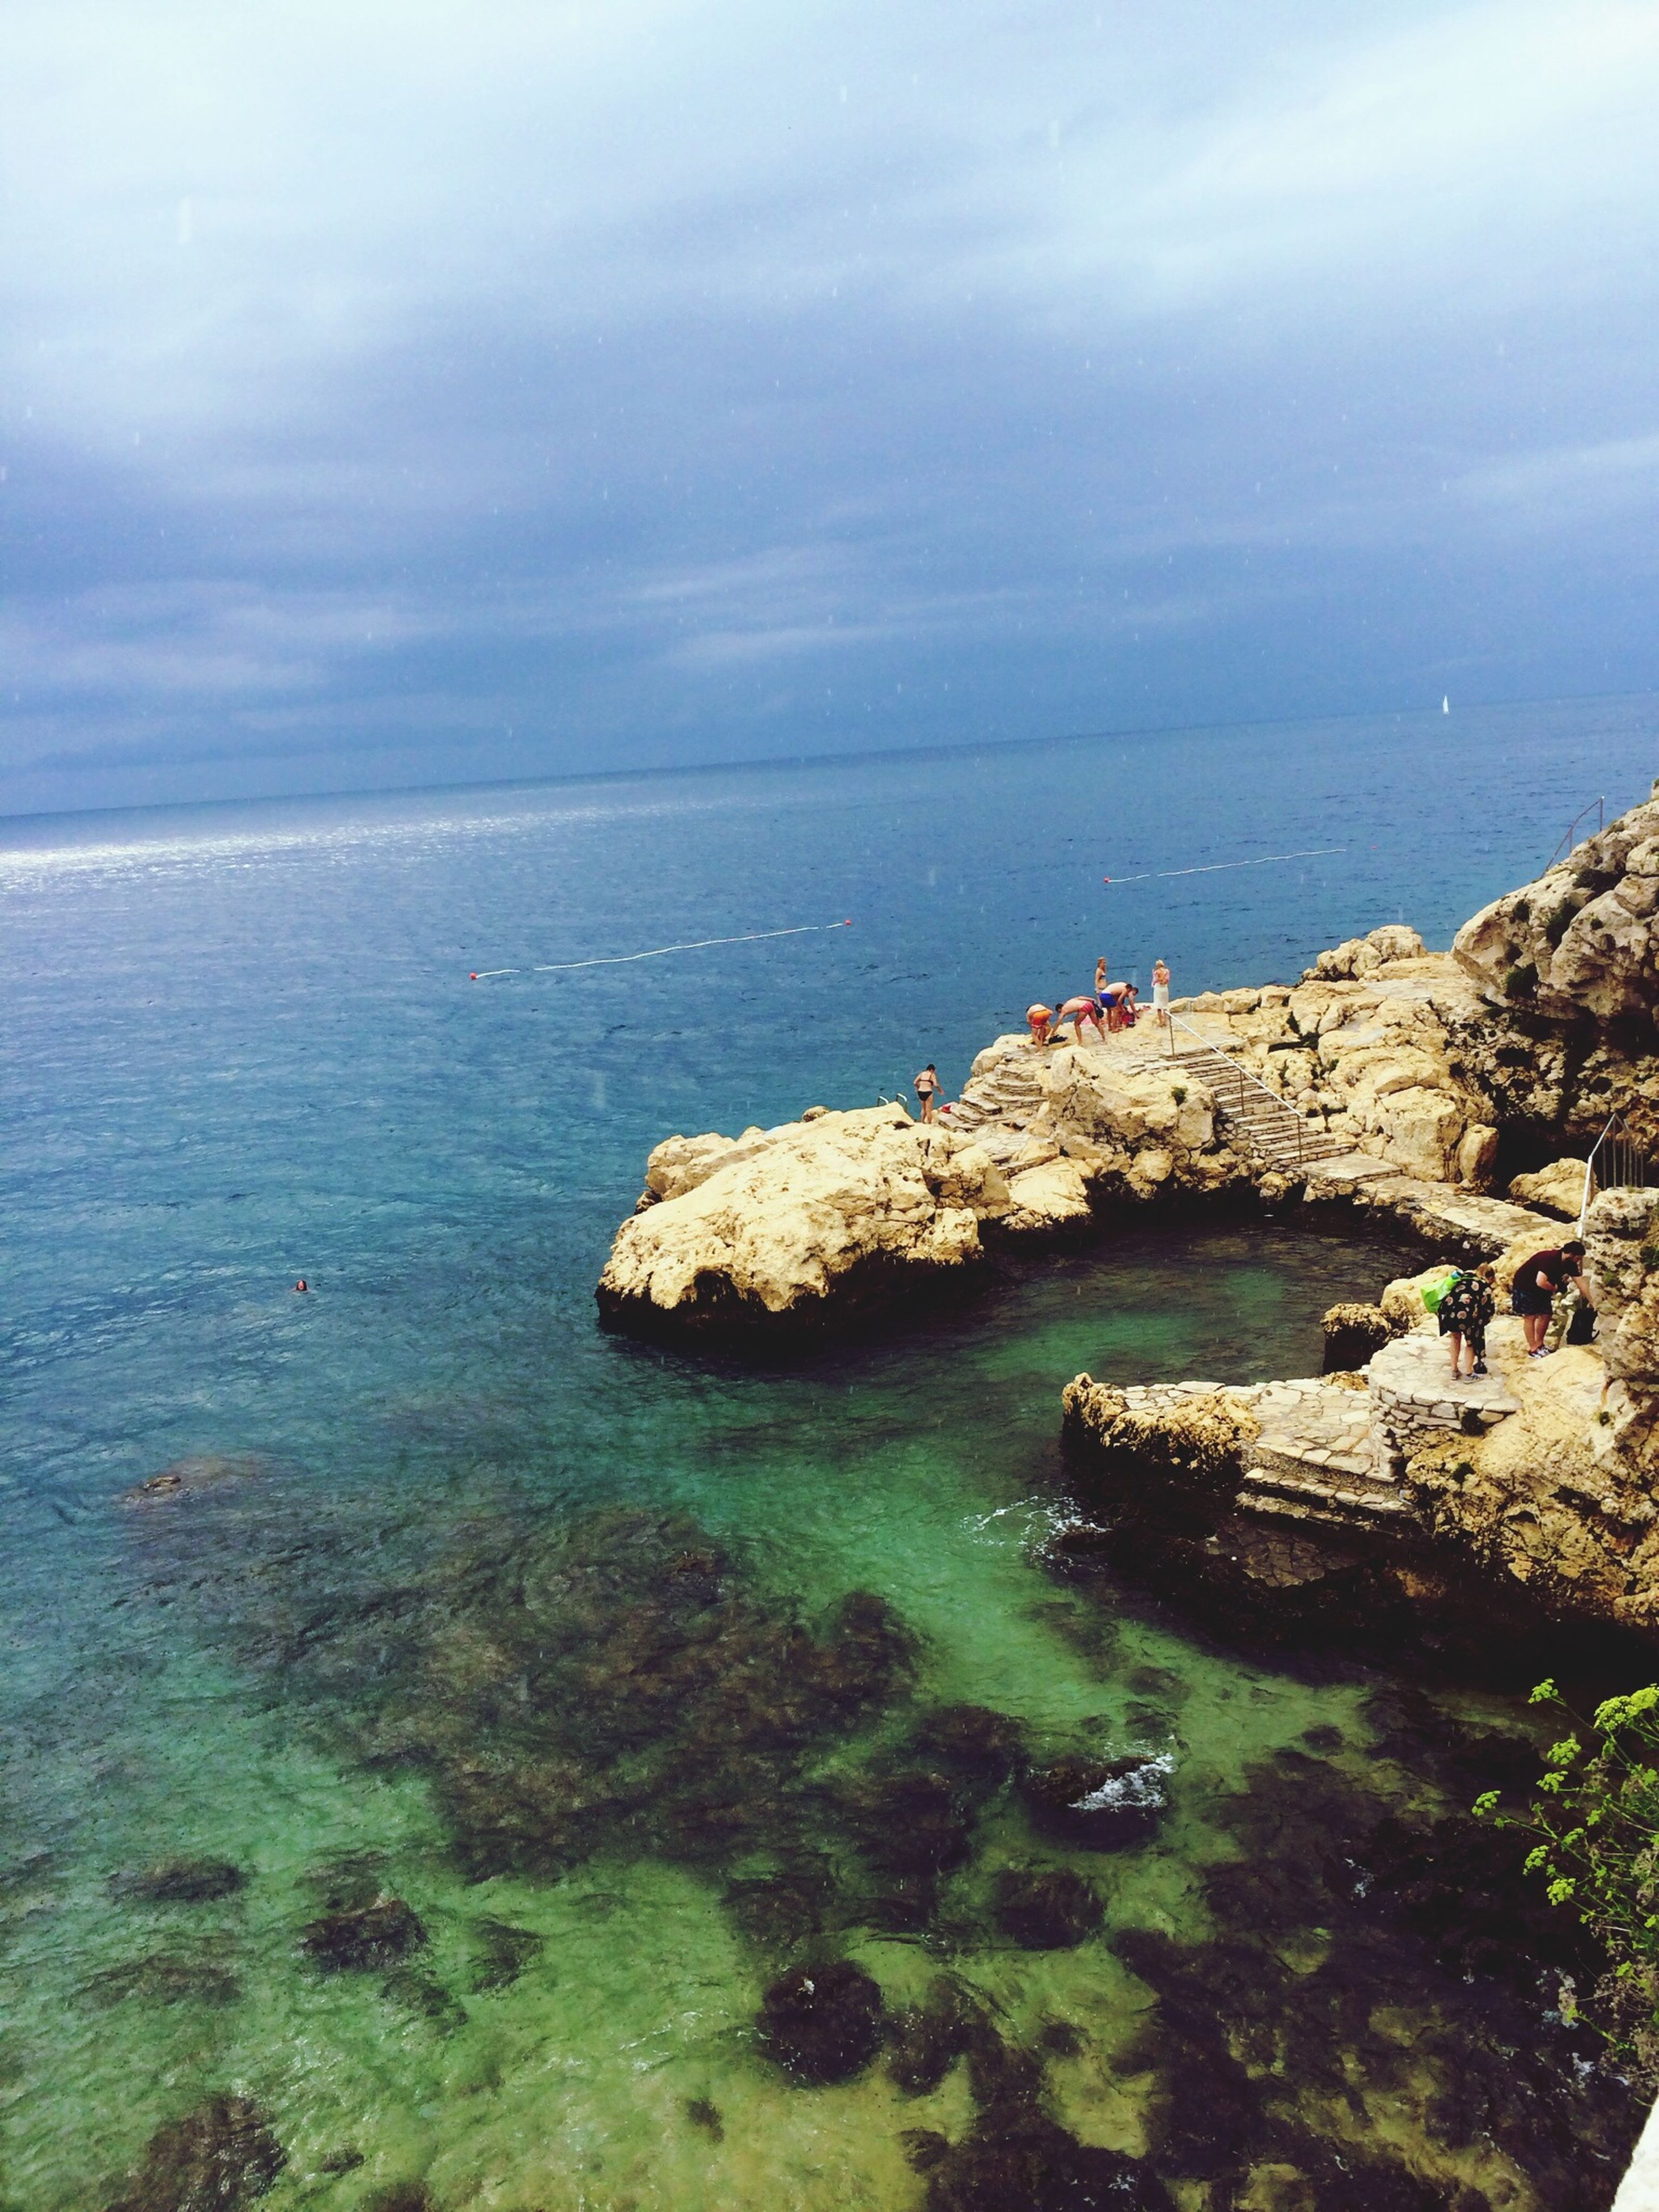 sea, horizon over water, water, tranquil scene, sky, scenics, tranquility, beauty in nature, cloud - sky, nature, idyllic, rock - object, beach, cloudy, coastline, cloud, seascape, shore, high angle view, remote